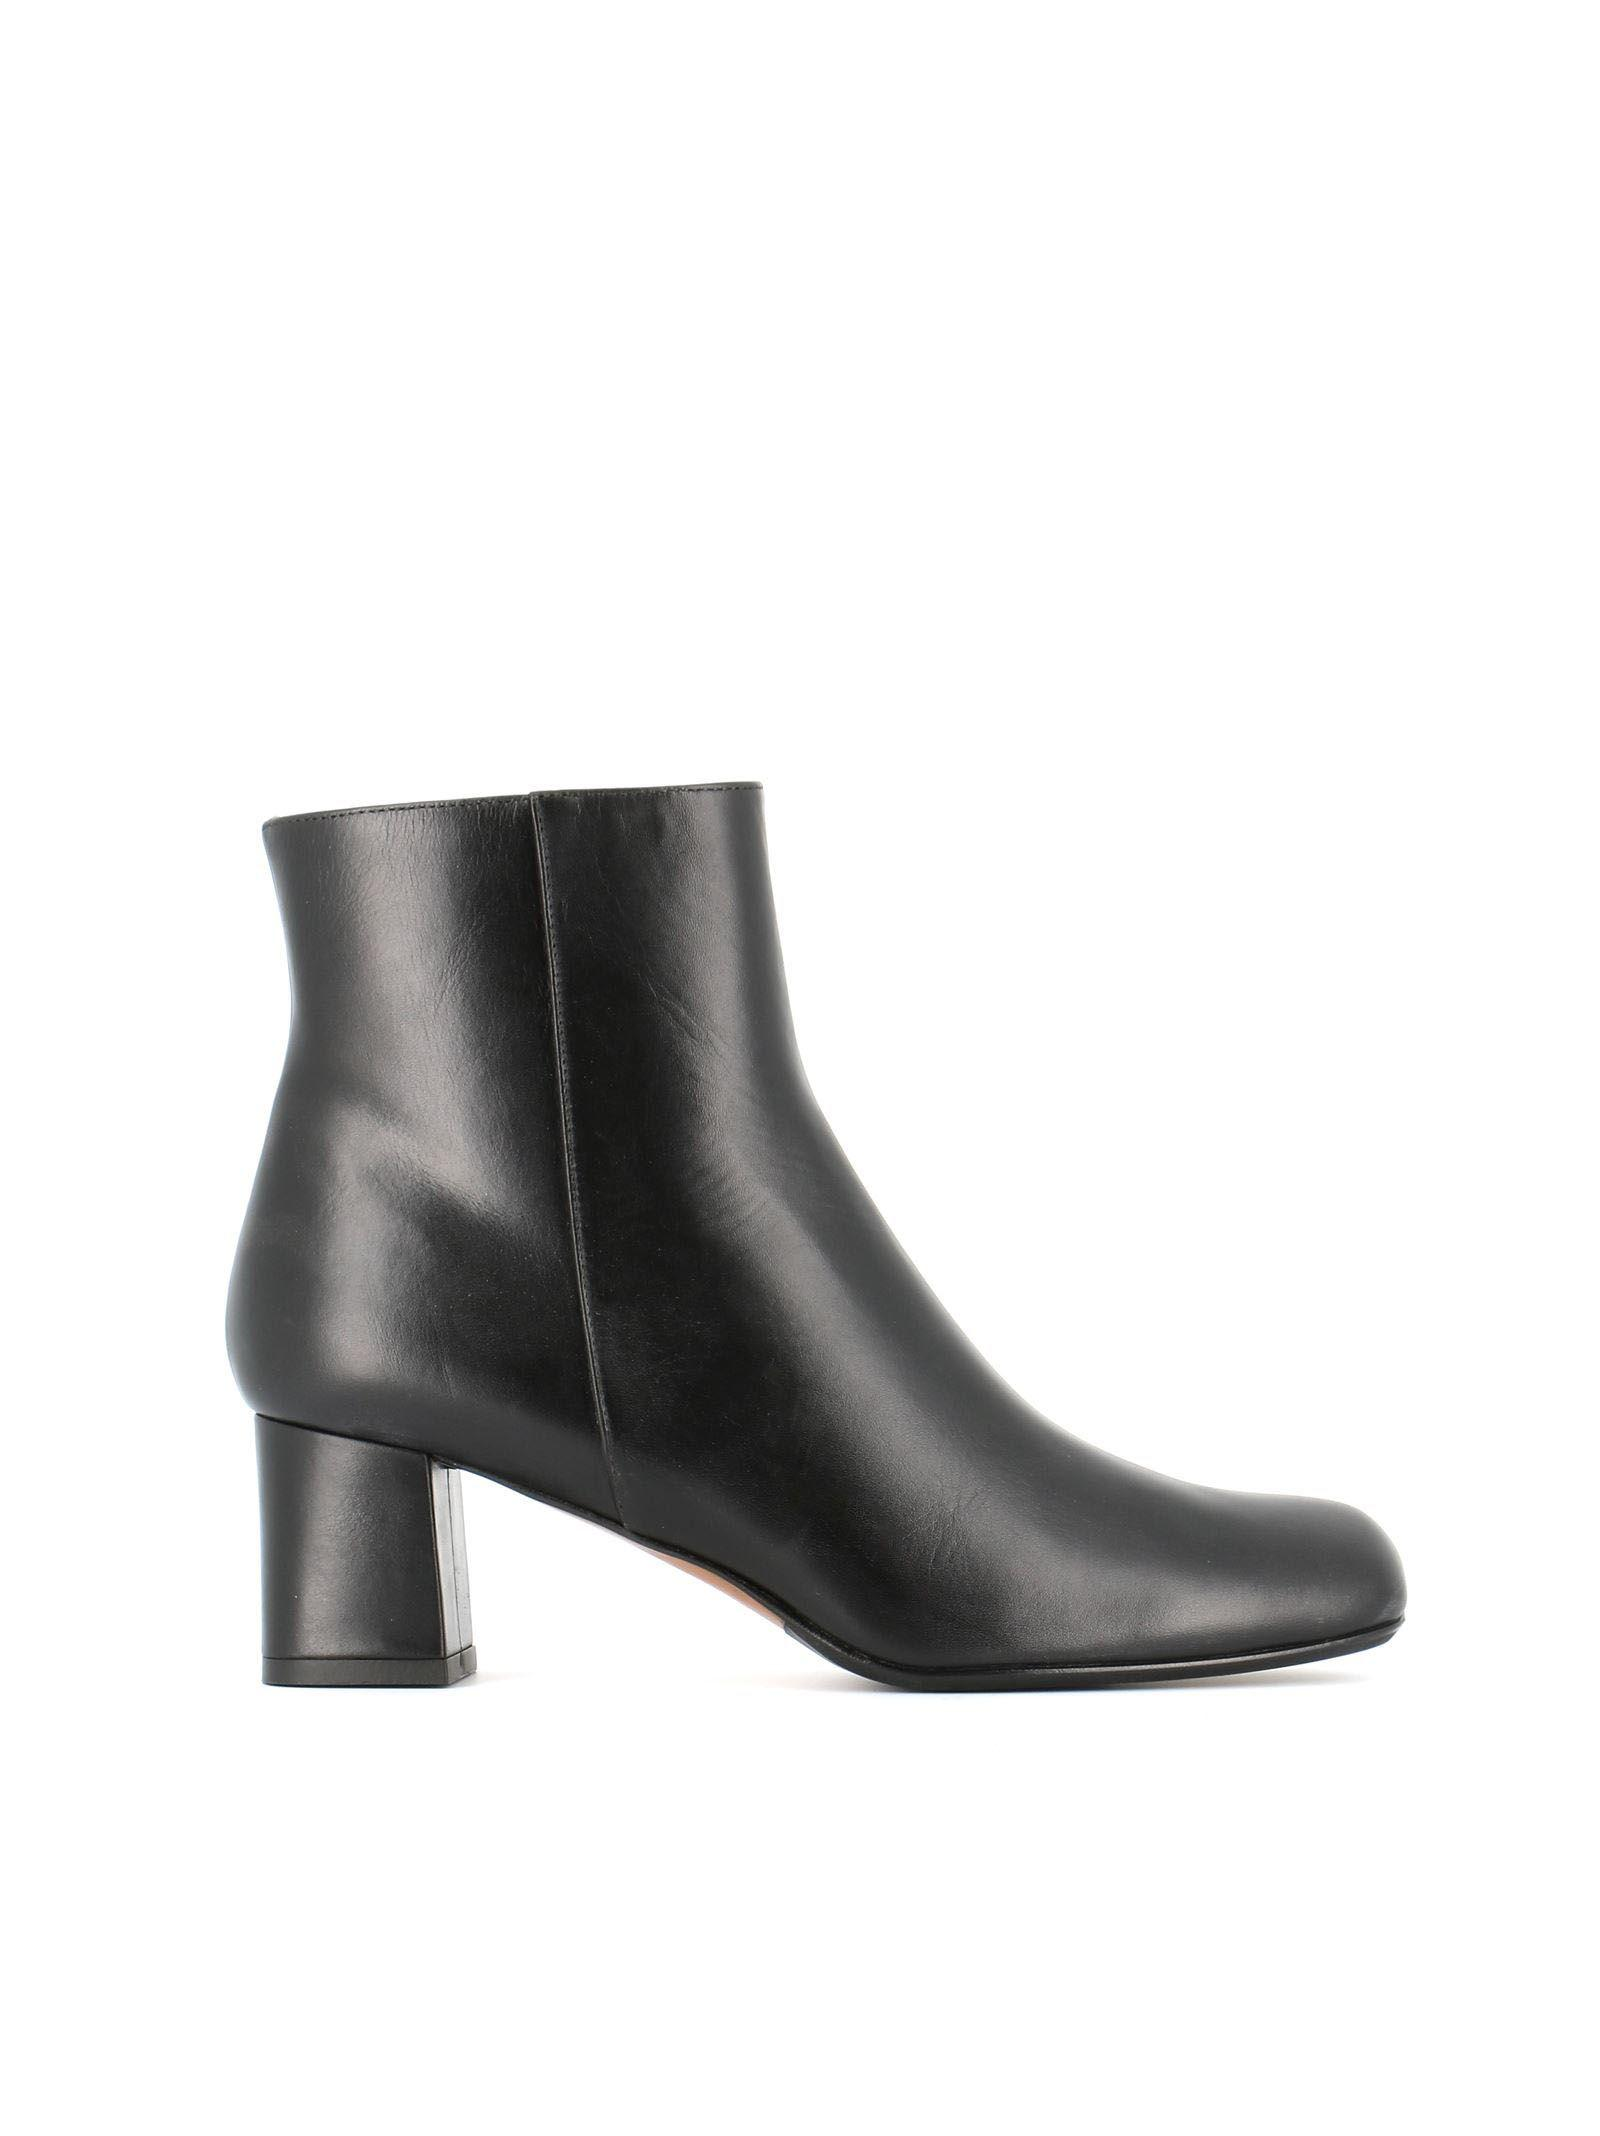 Antonio Barbato Mj298 Ankle Boots In Black